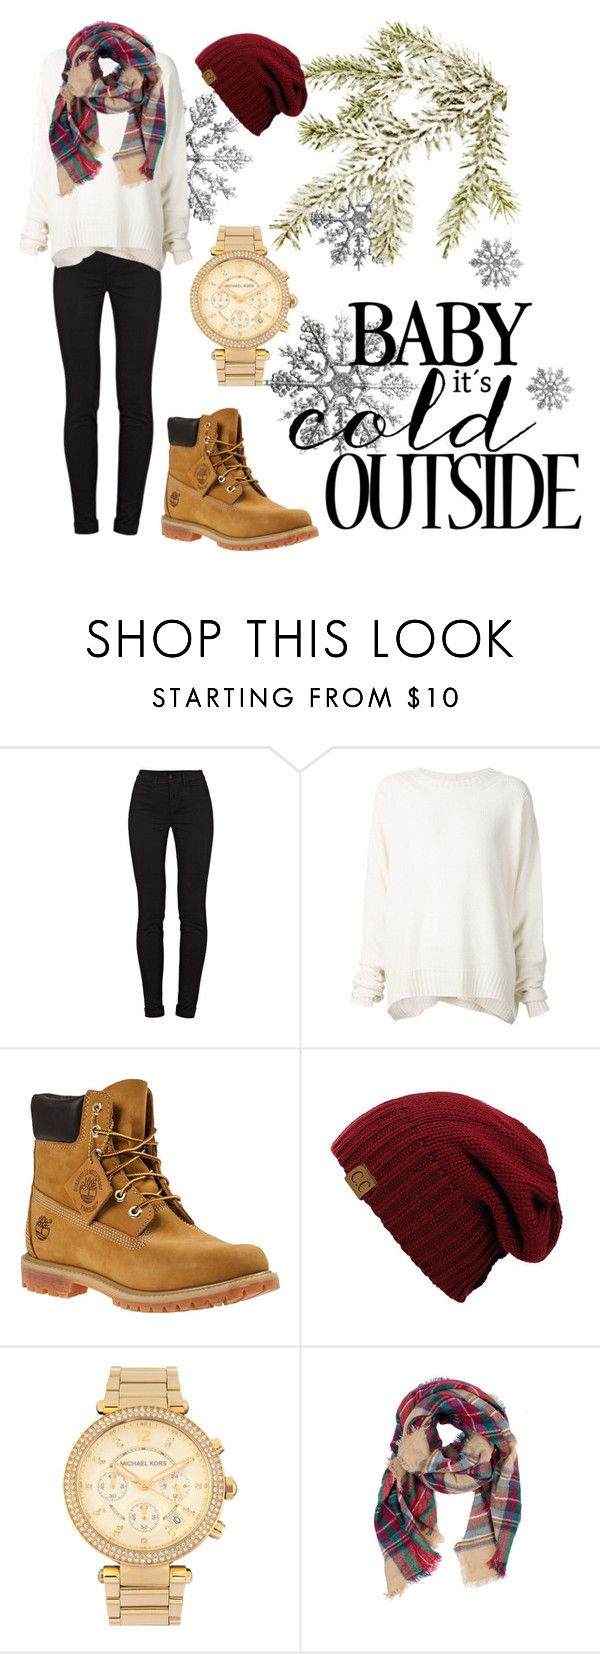 """Baby it's cold outside"" by rosa-linda ❤ liked on Polyvore featuring J Brand, URBAN ZEN, Timberland, Michael Kors, Look by M, Christmas, winterfashion, winterstyle, winter2015 and Christmas2015"